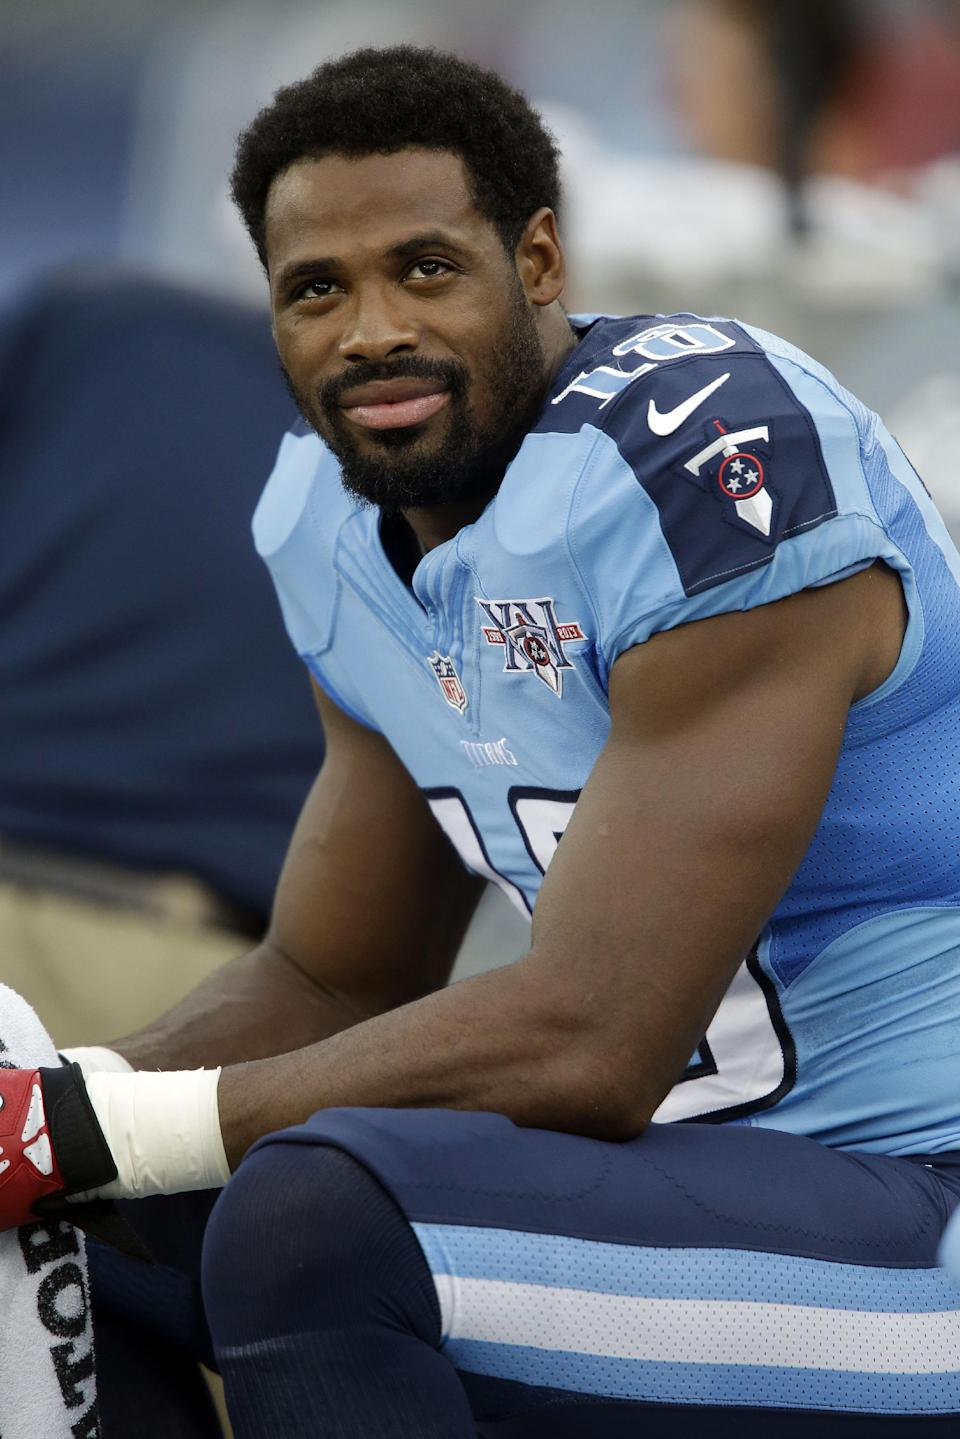 Titans sit WR Kenny Britt with cracked rib vs Jets